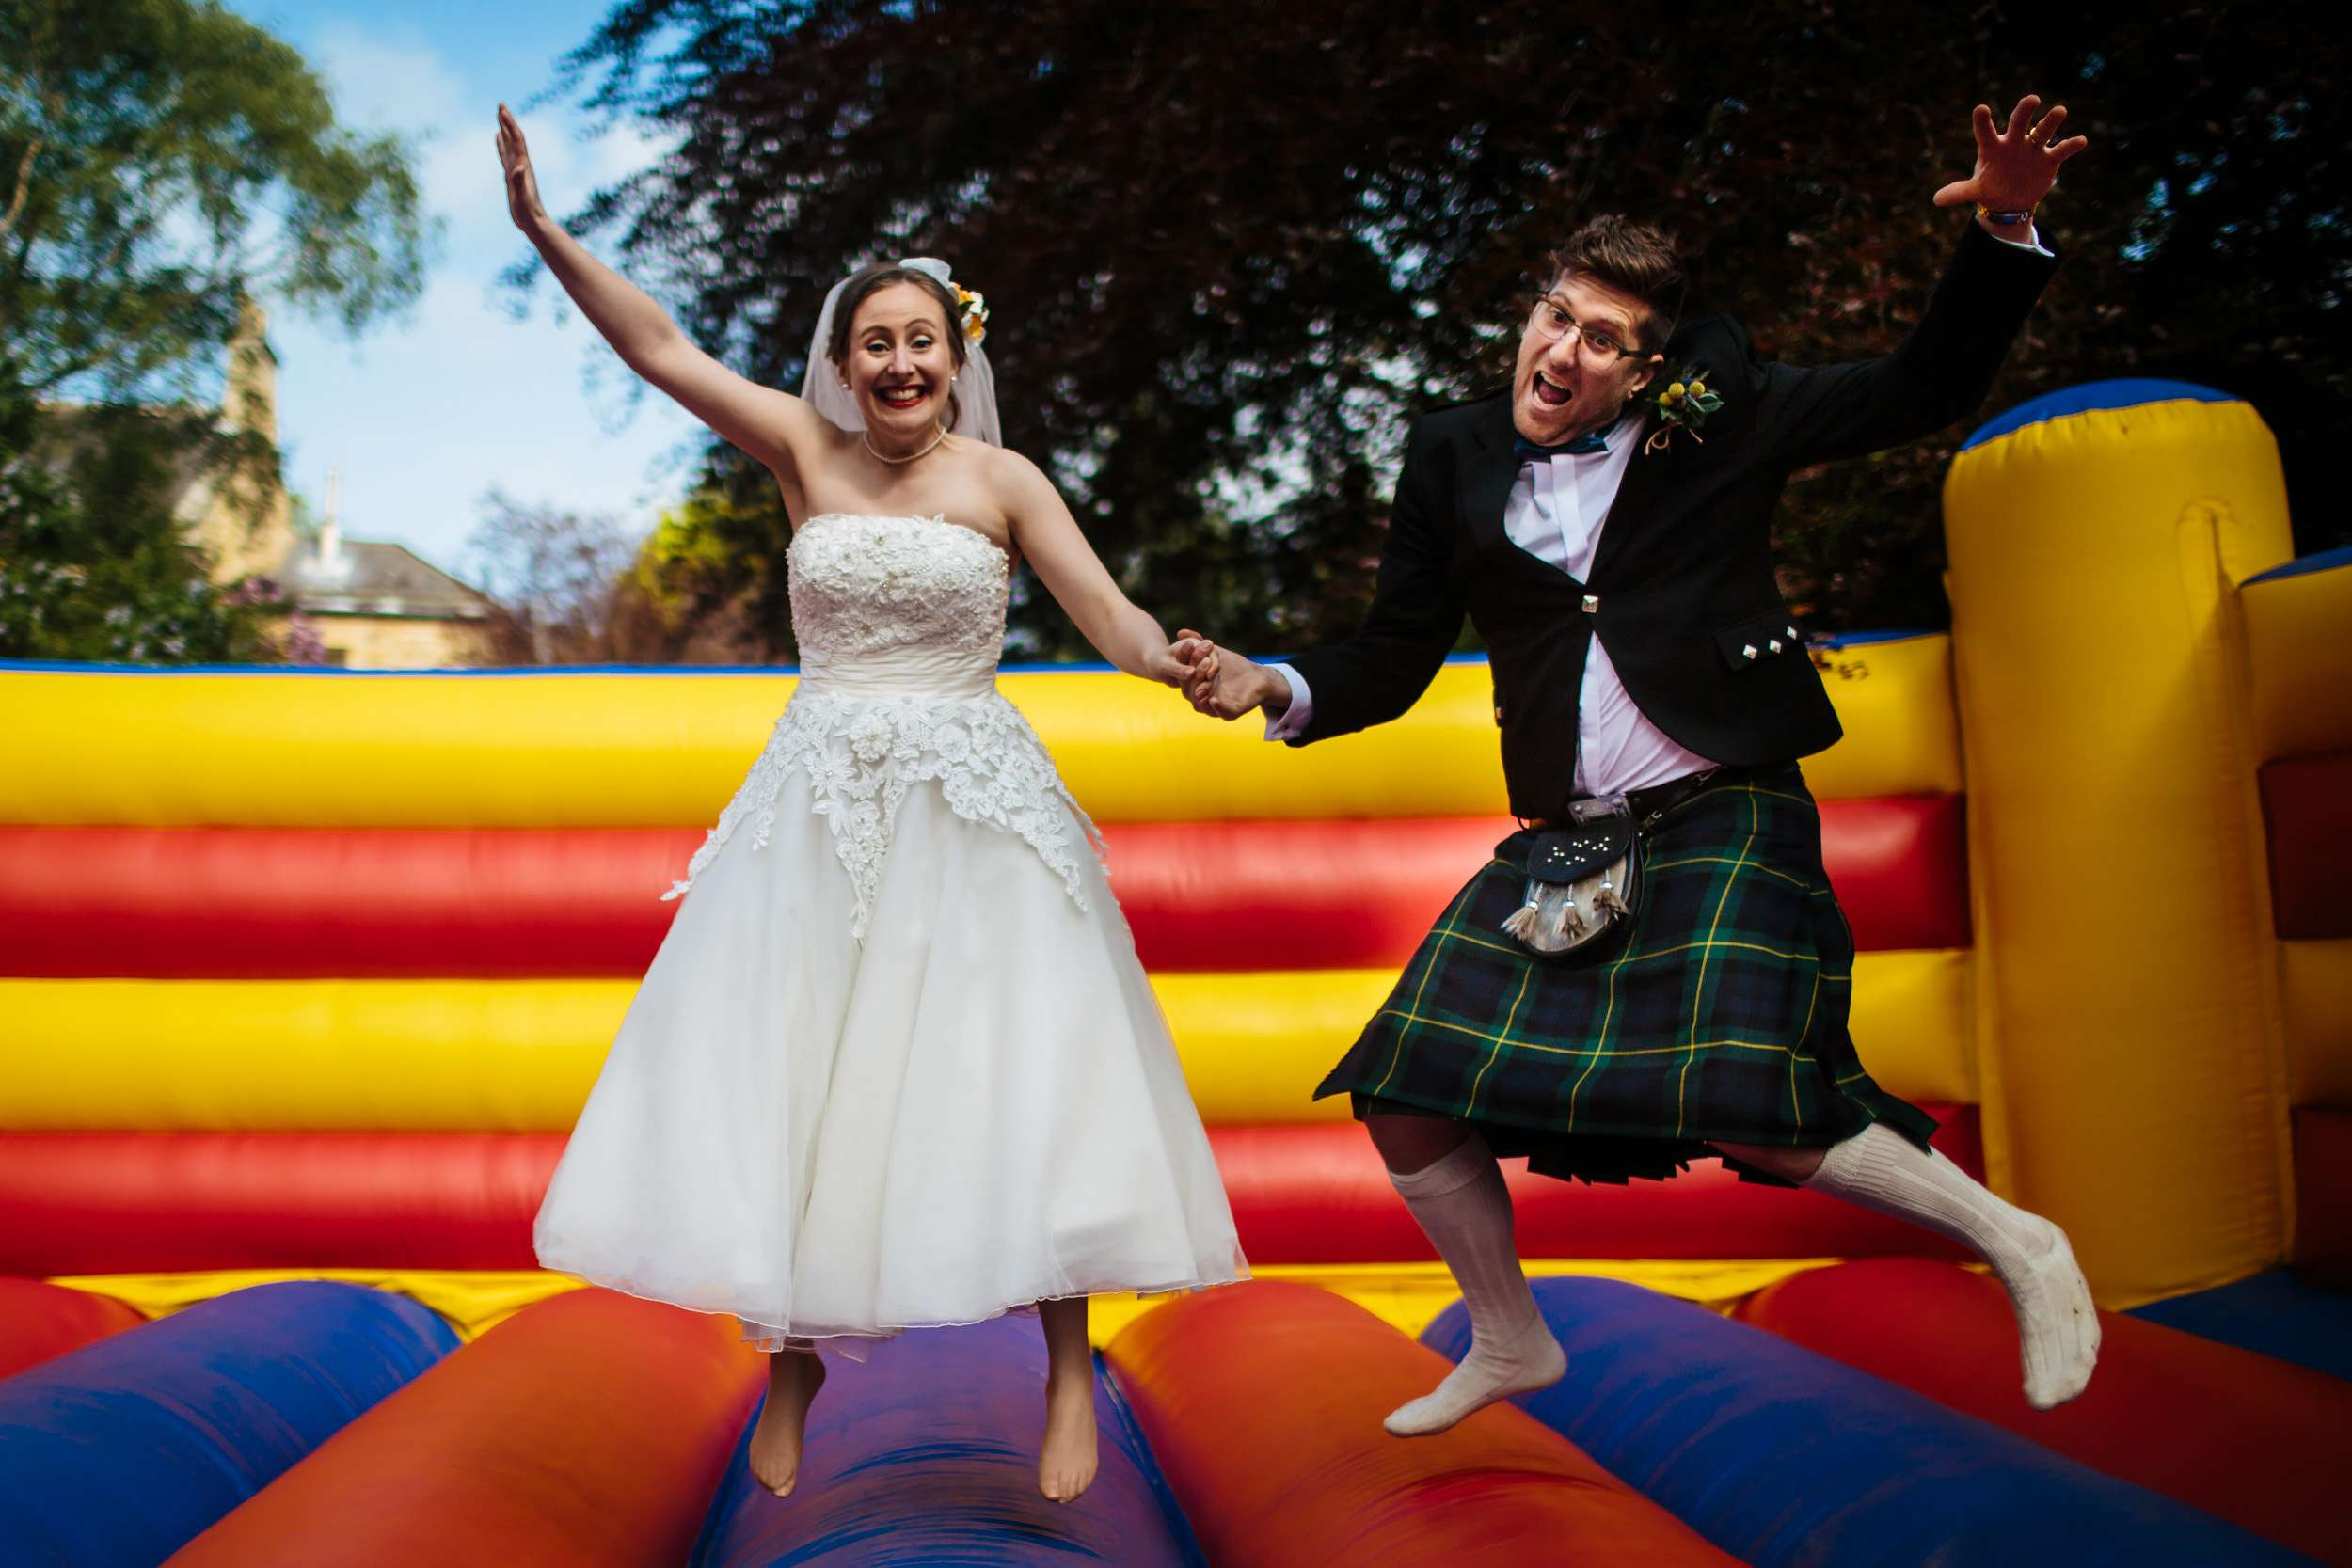 Leeds Yorkshire Wedding Photographer bouncy castle couple